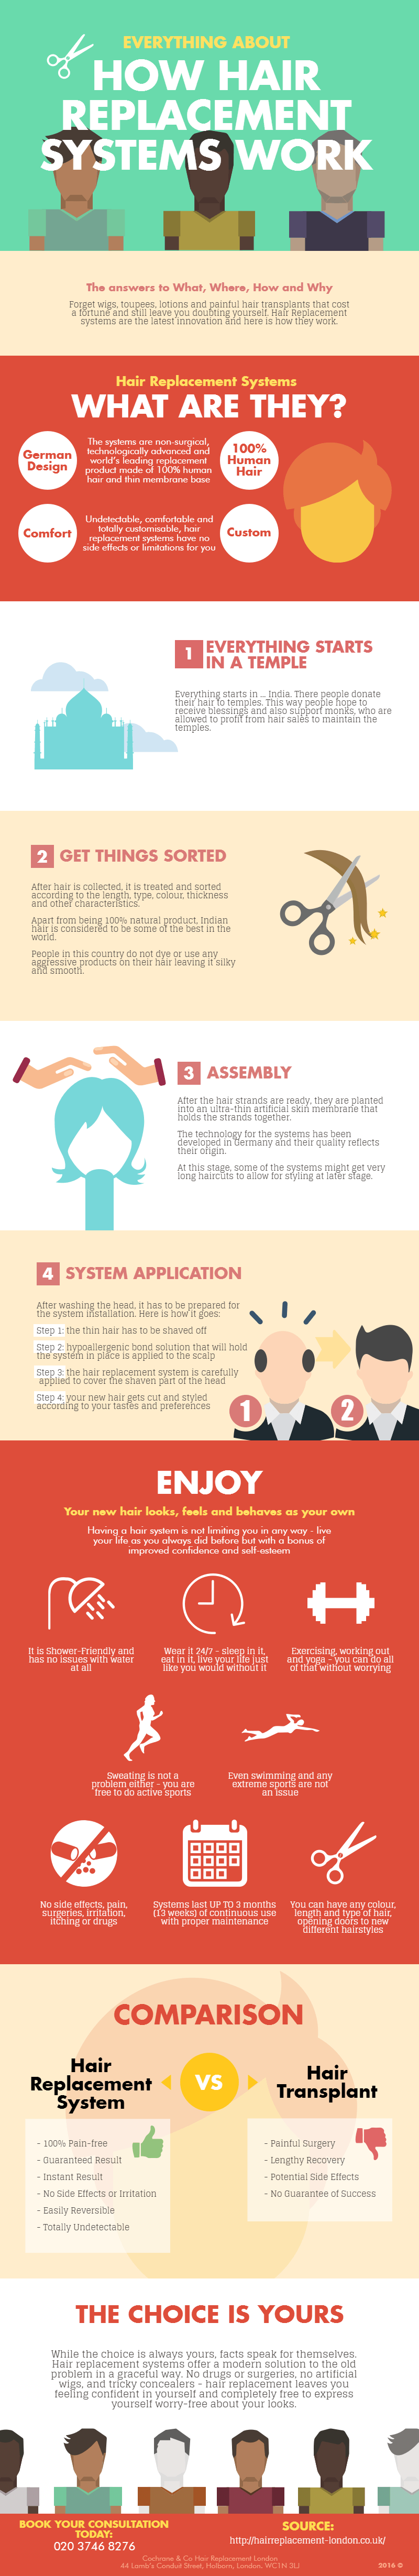 How Hair Replacement Systems Work - Infographic